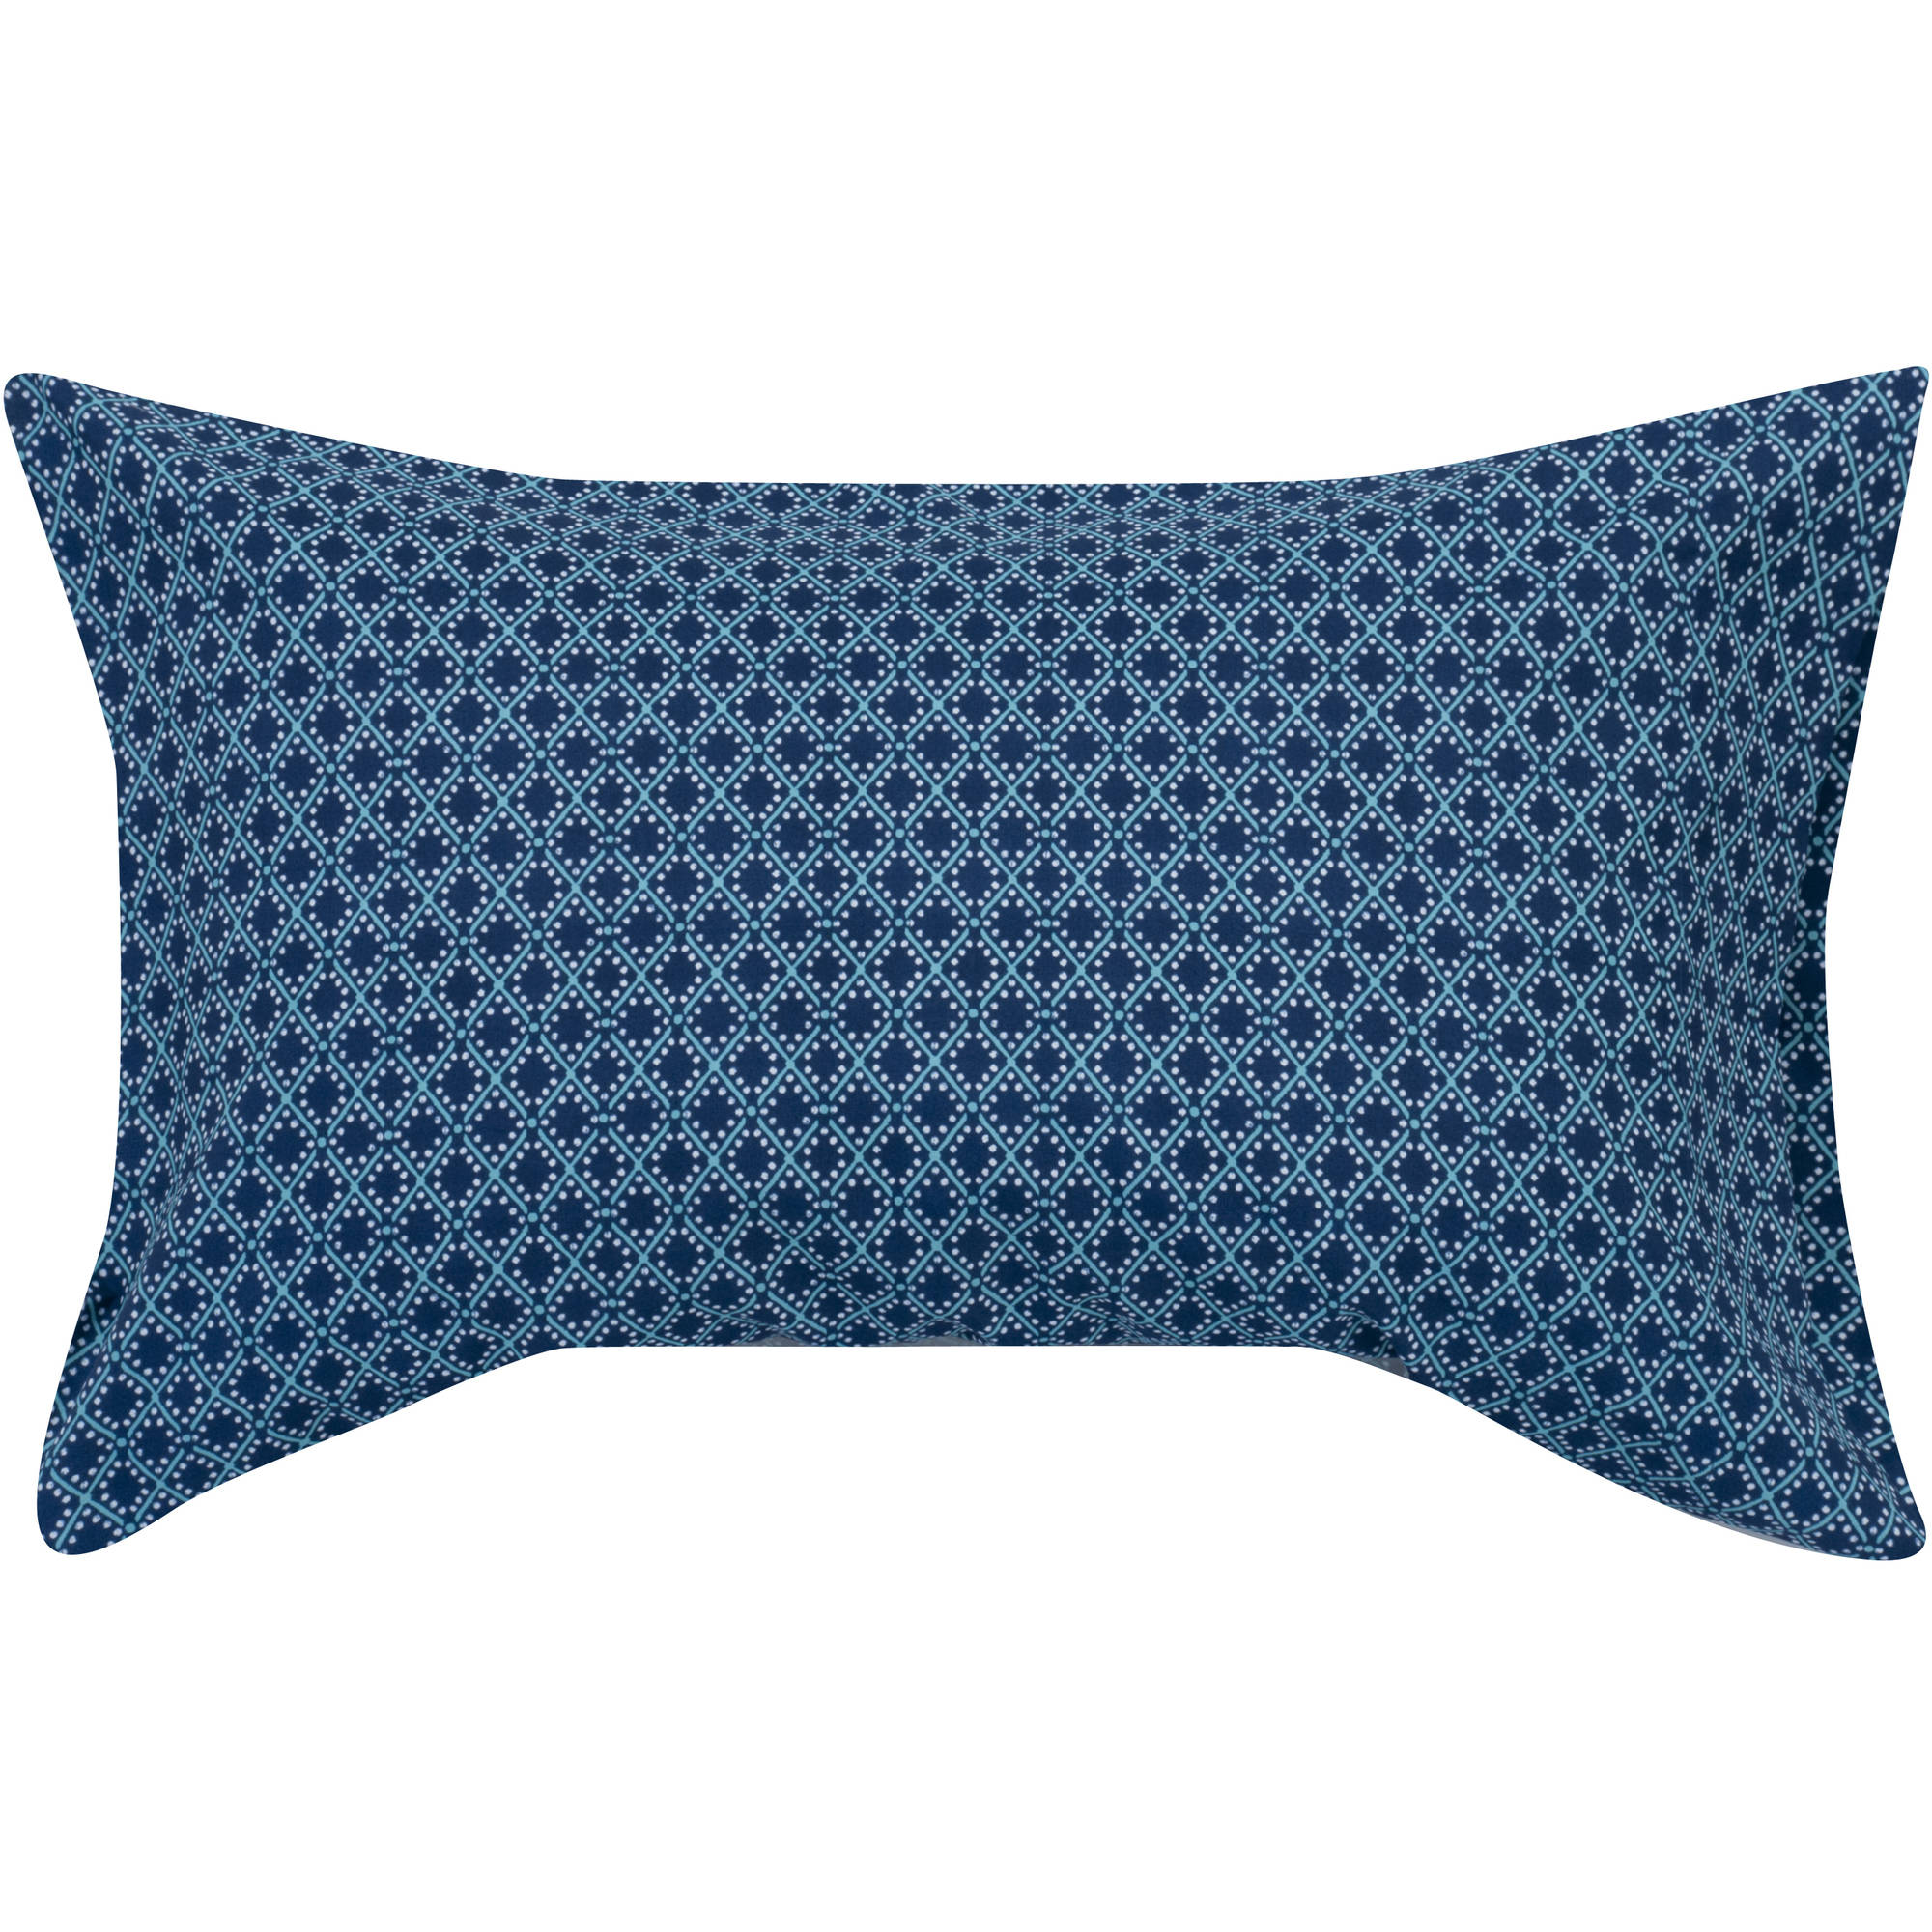 Mainstays Microfiber Pillowcase